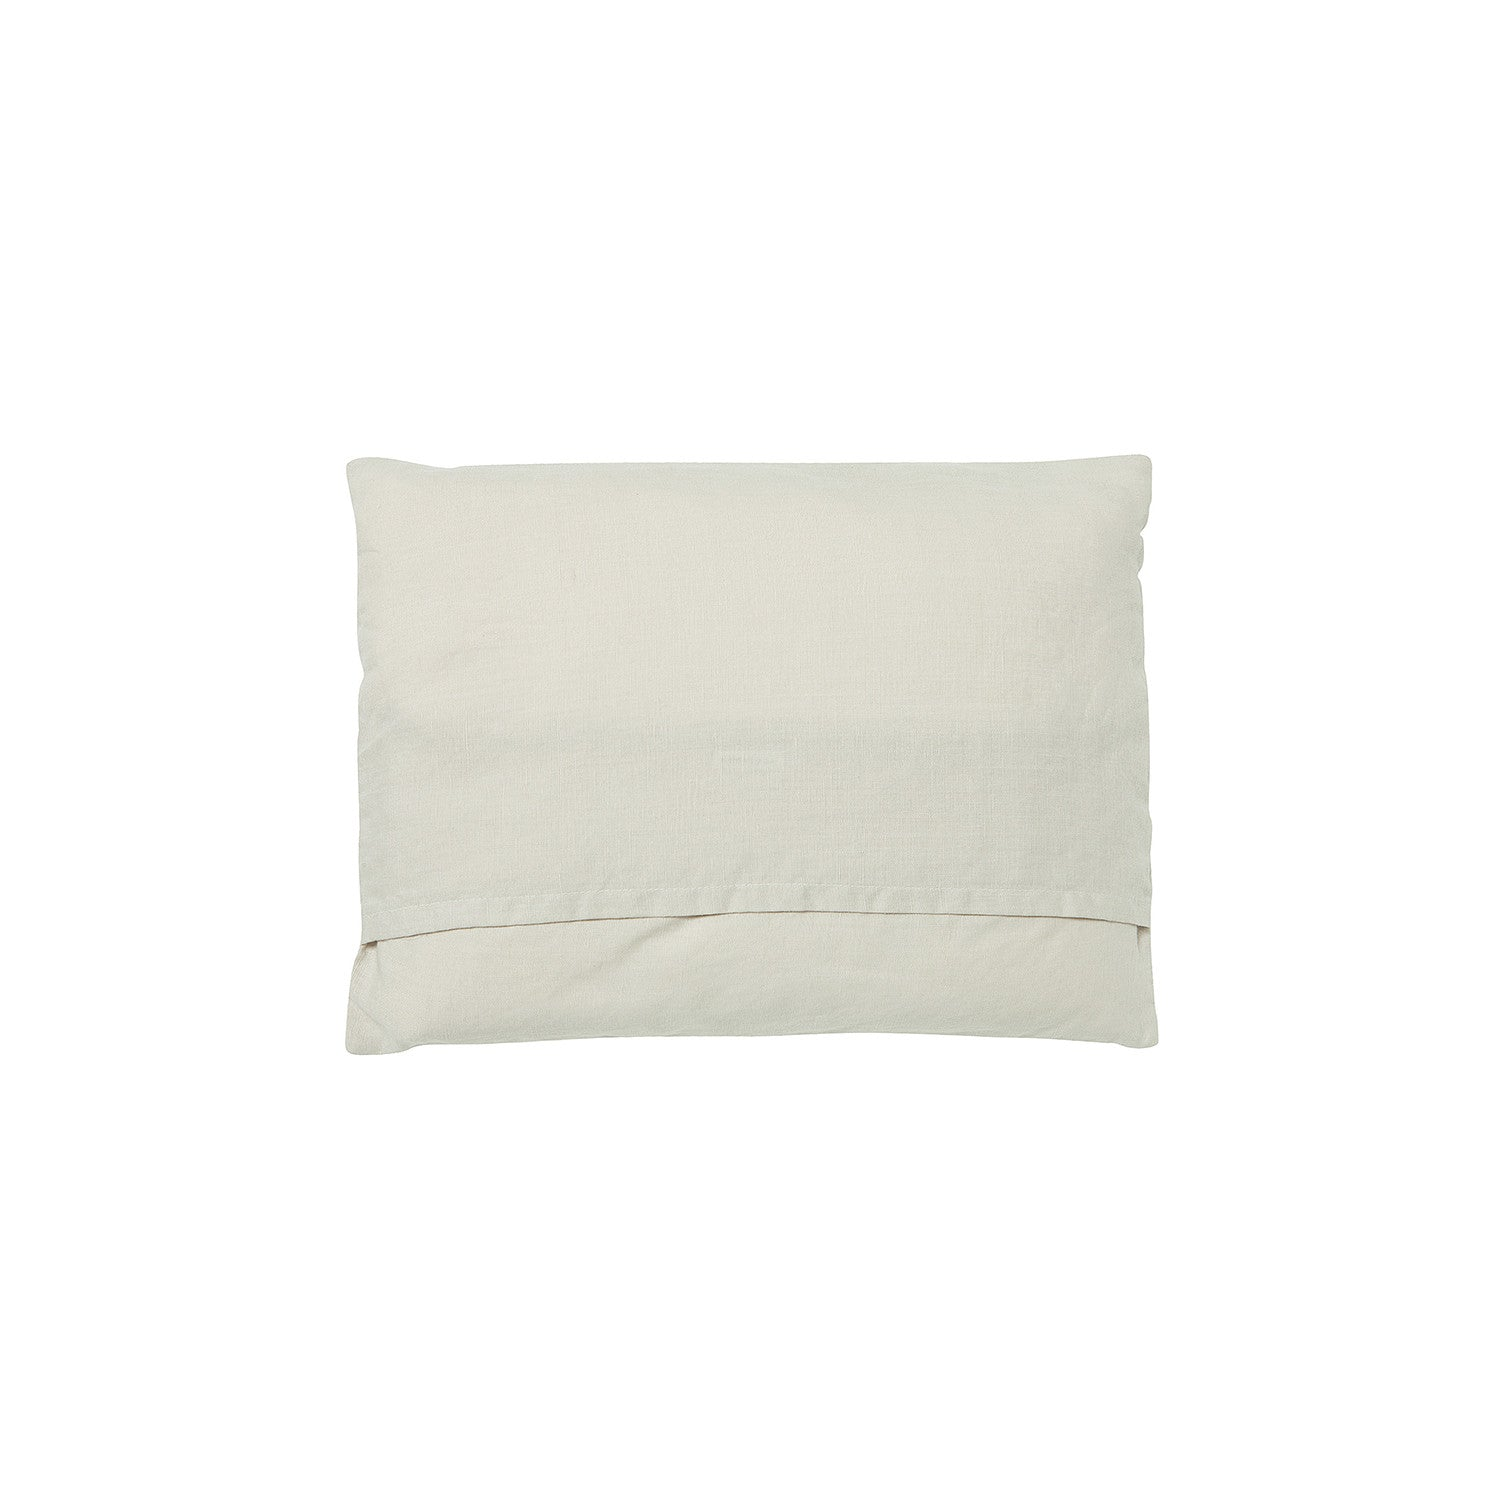 Bene Bene Ecru Soft Linen Pillow - Ladida